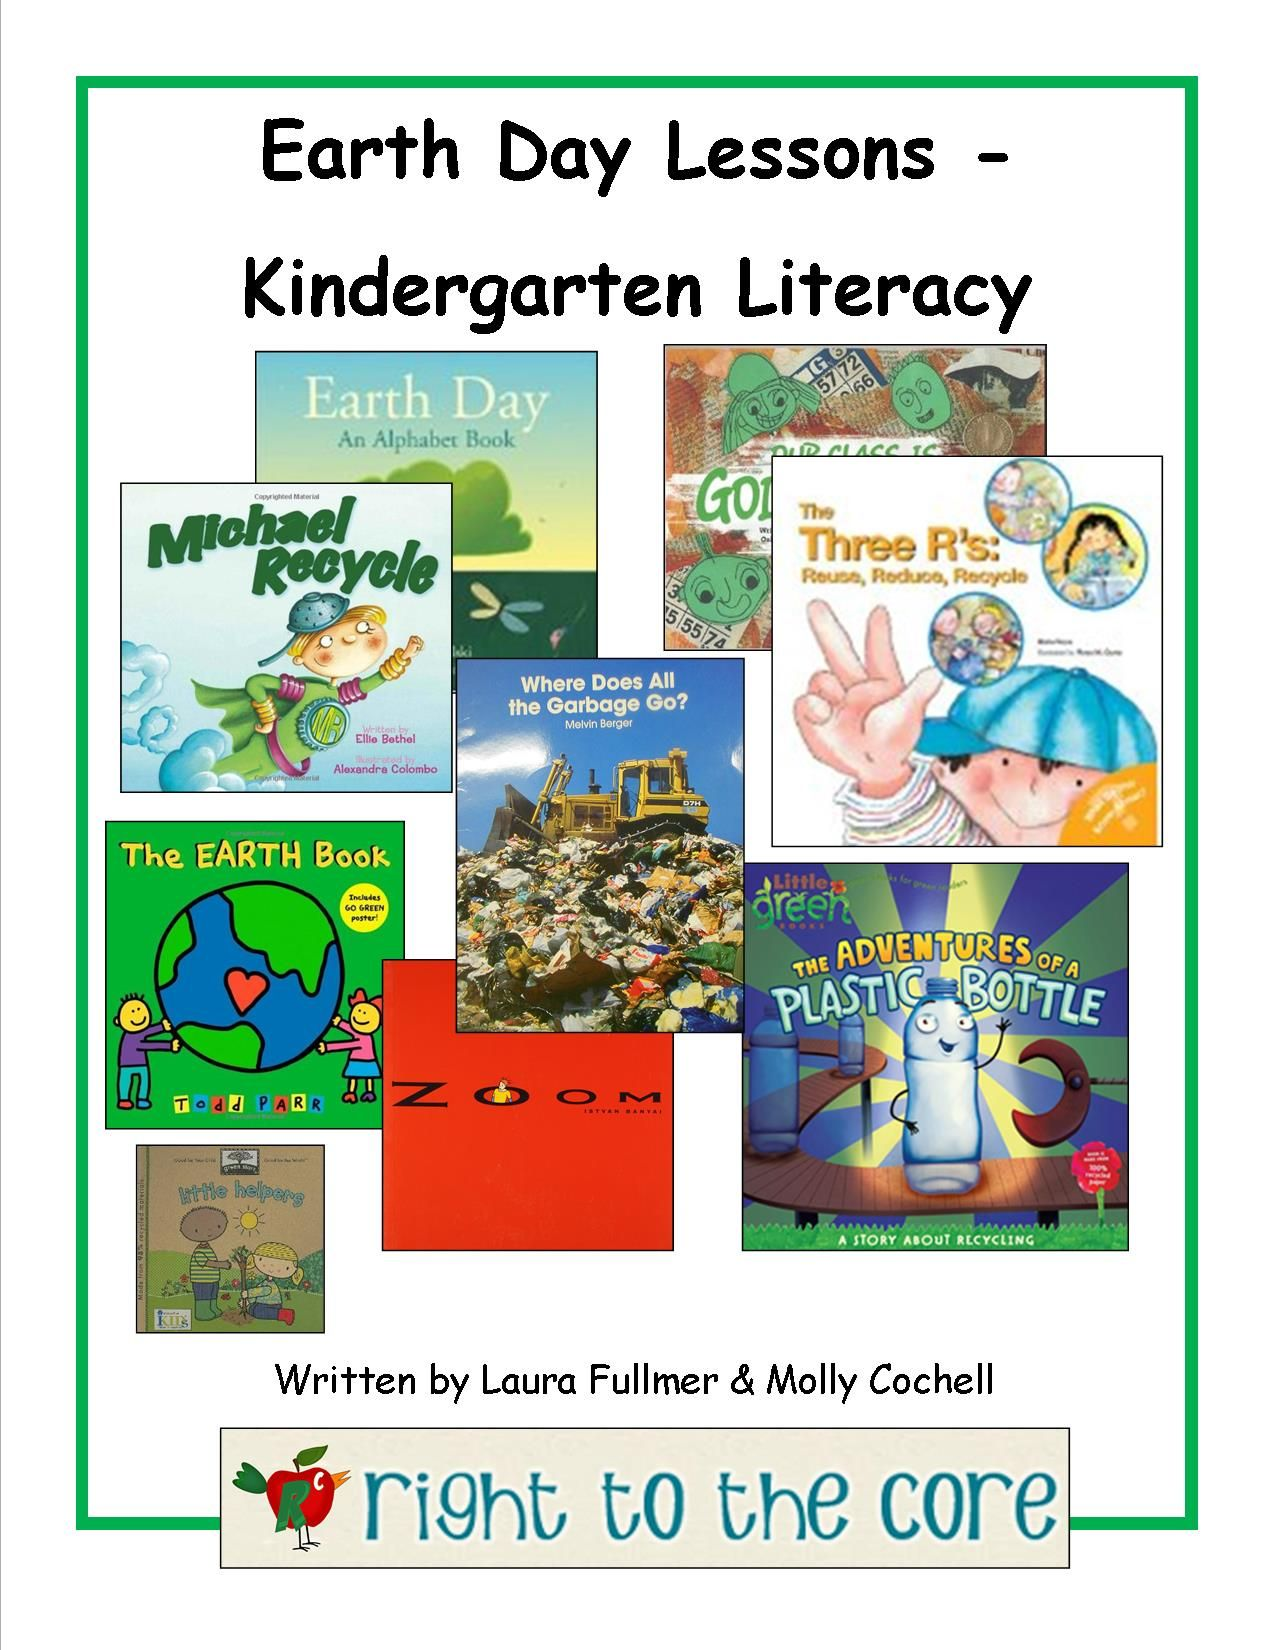 Laura And Molly Have A New Lesson Pack Out For Earth Day